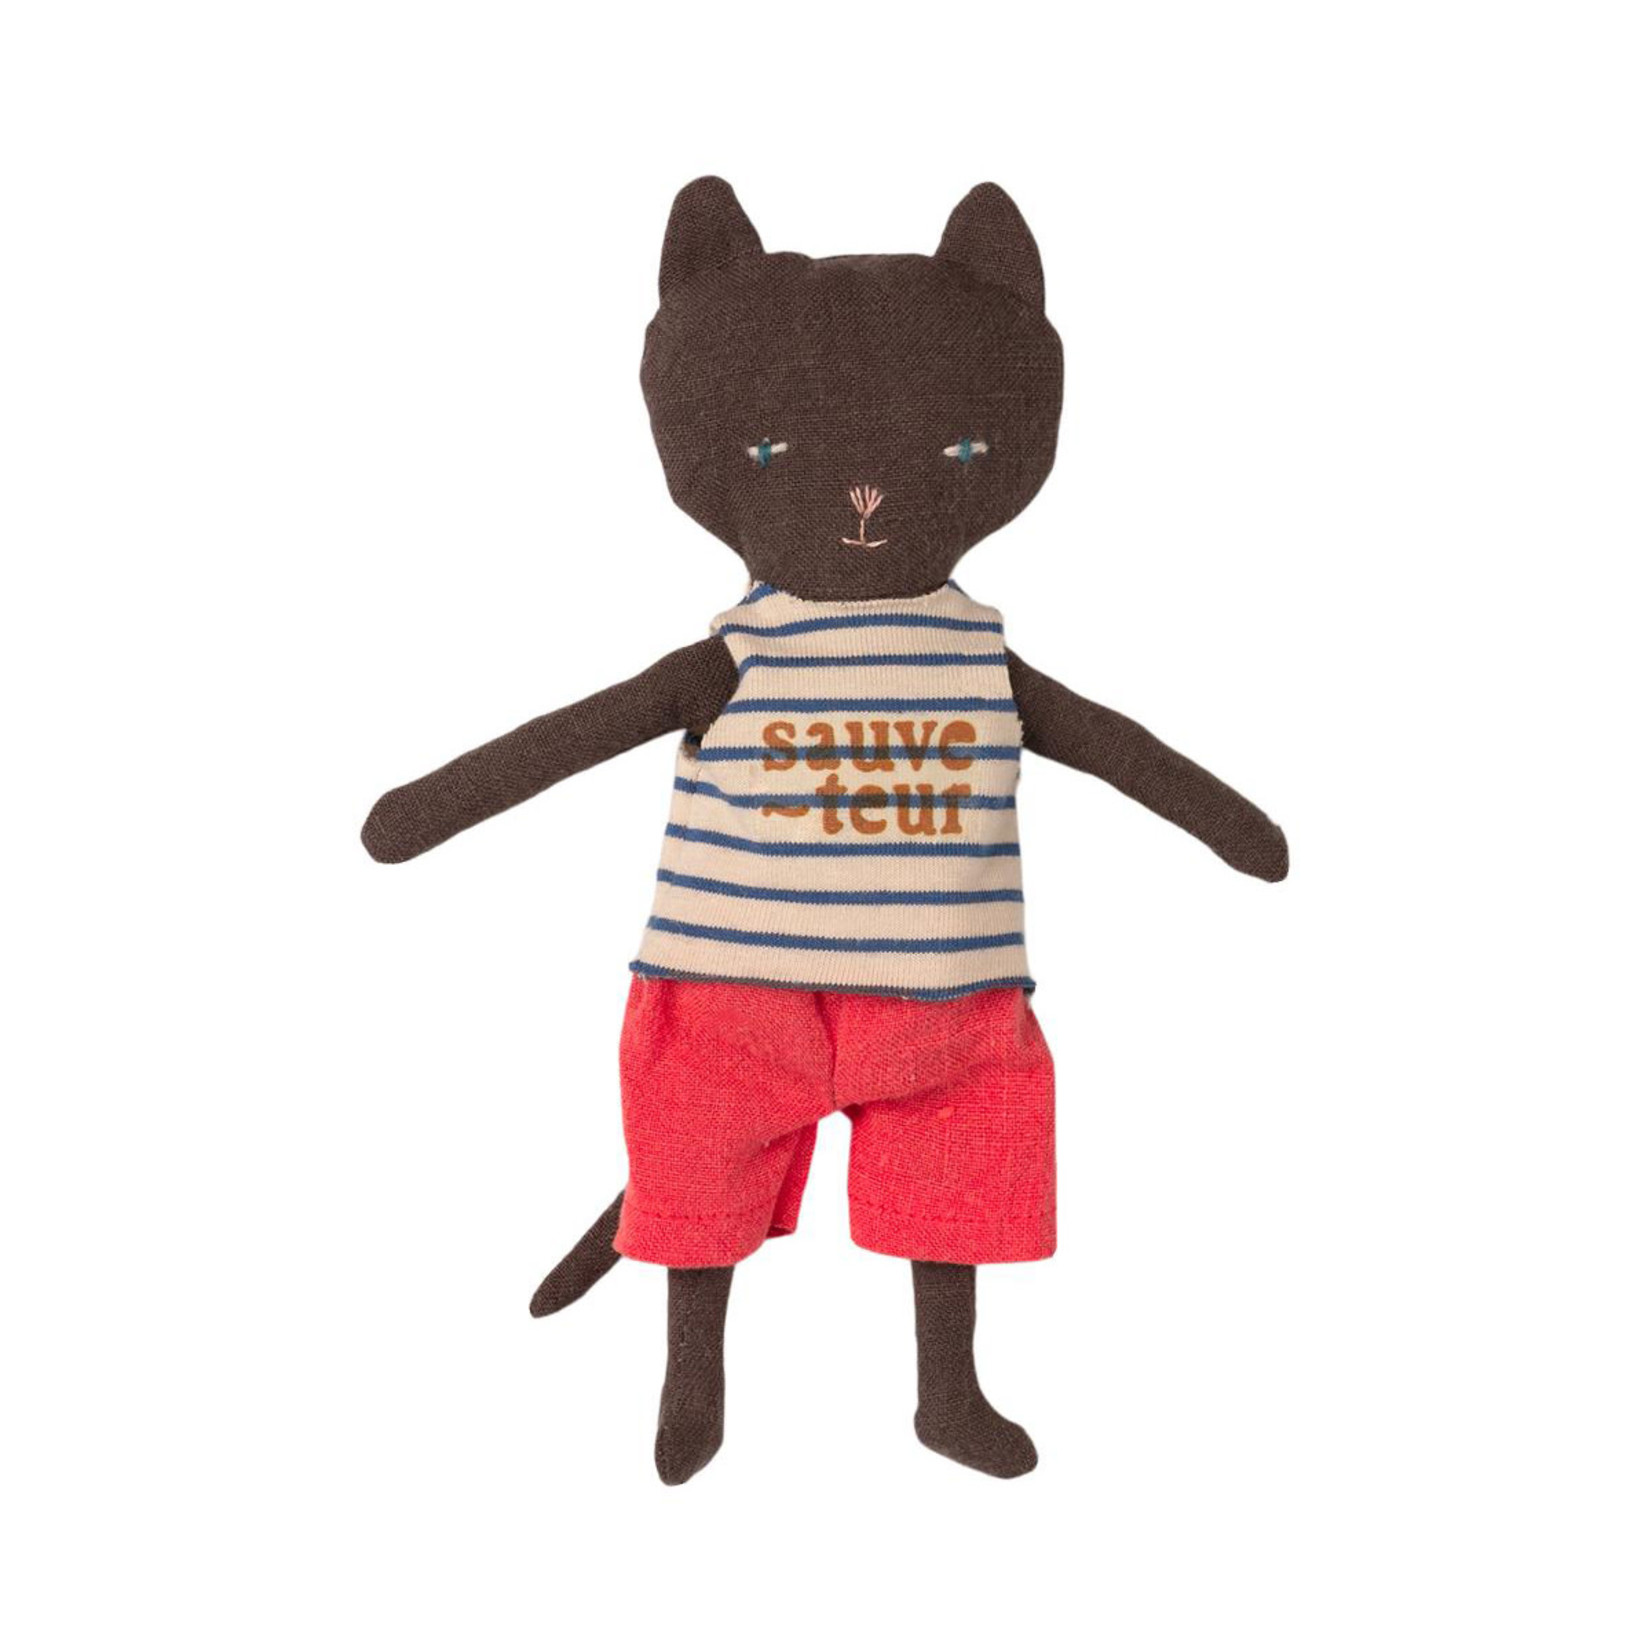 Maileg PRE ORDER Maileg Sauveteur, Tower with cat - Estimated arrival mid July